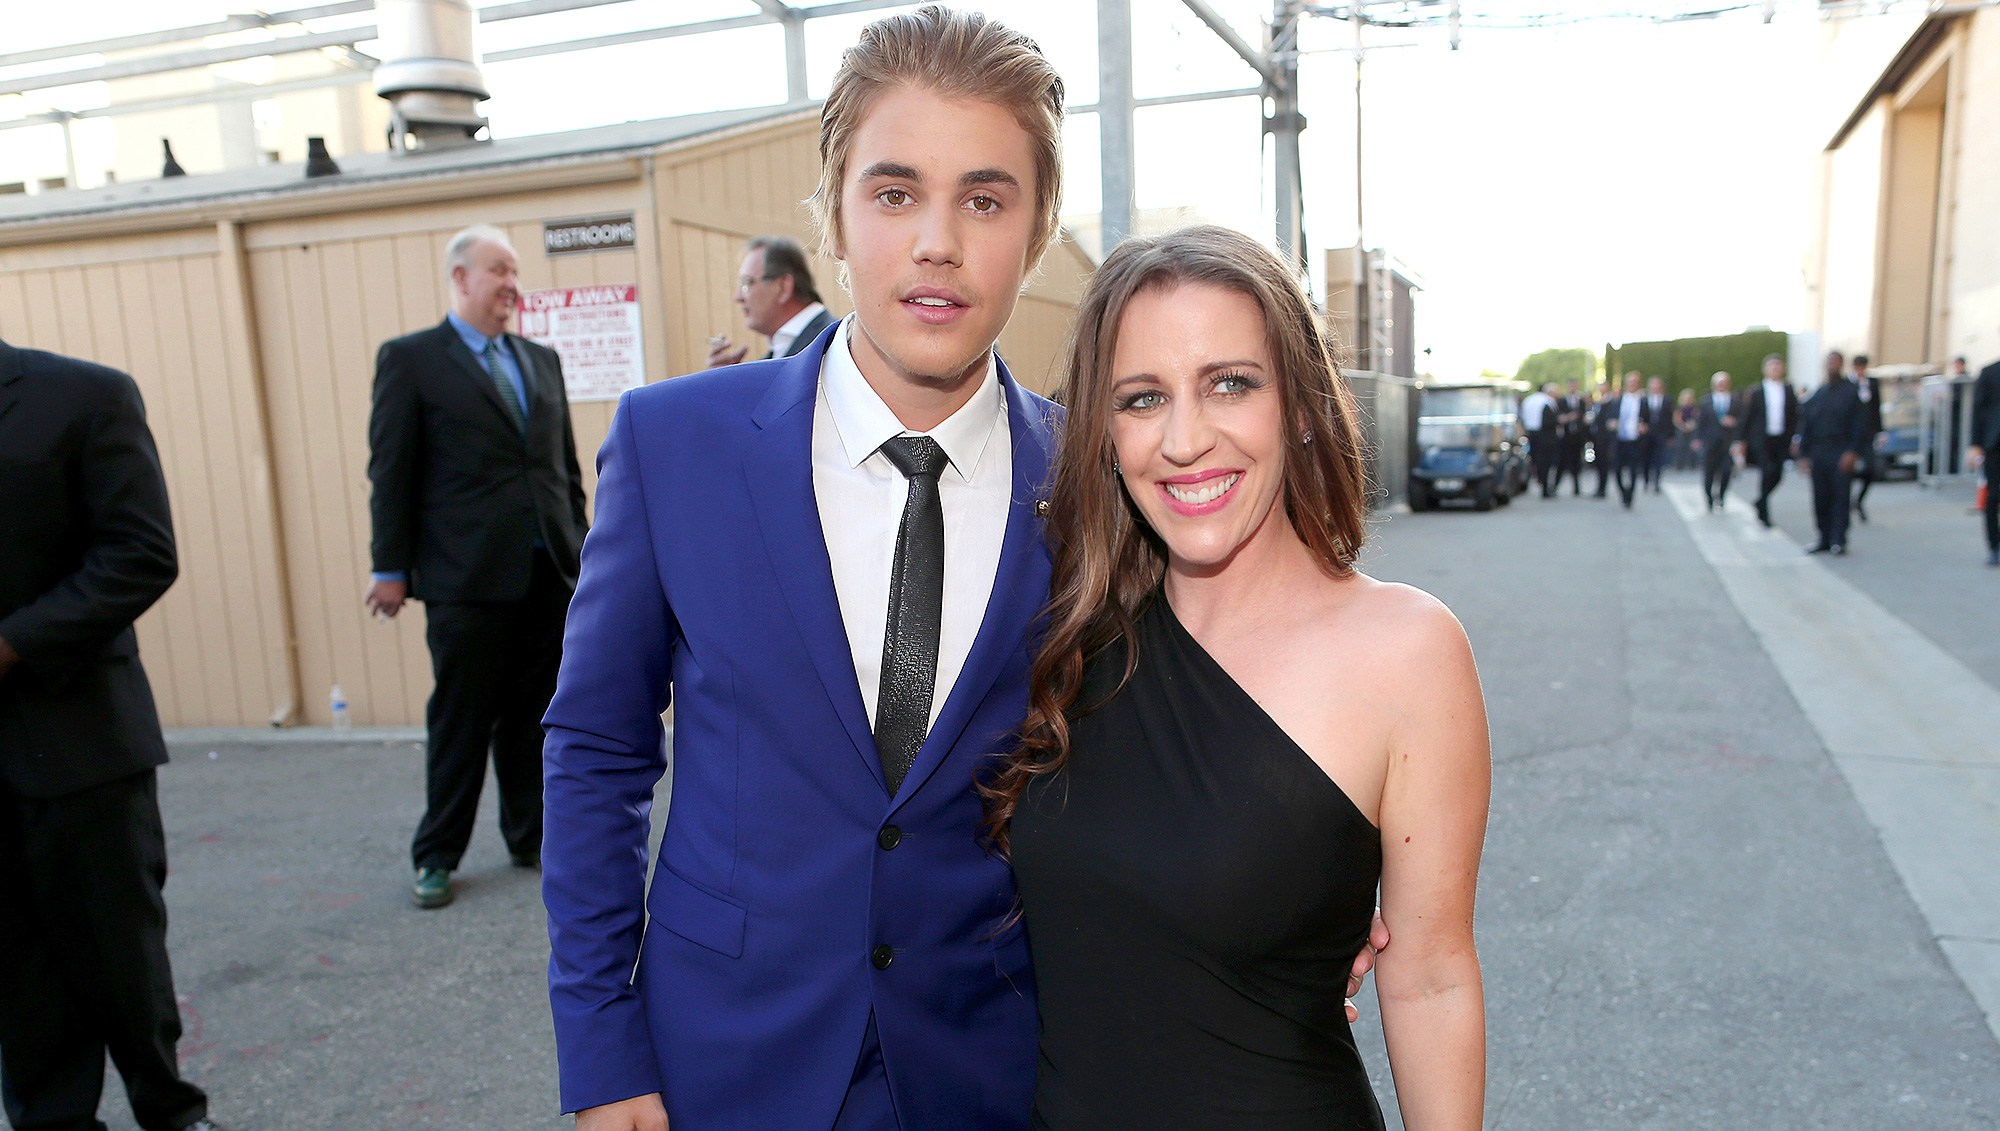 Justin Bieber, Pattie Mallette, Hailey Baldwin